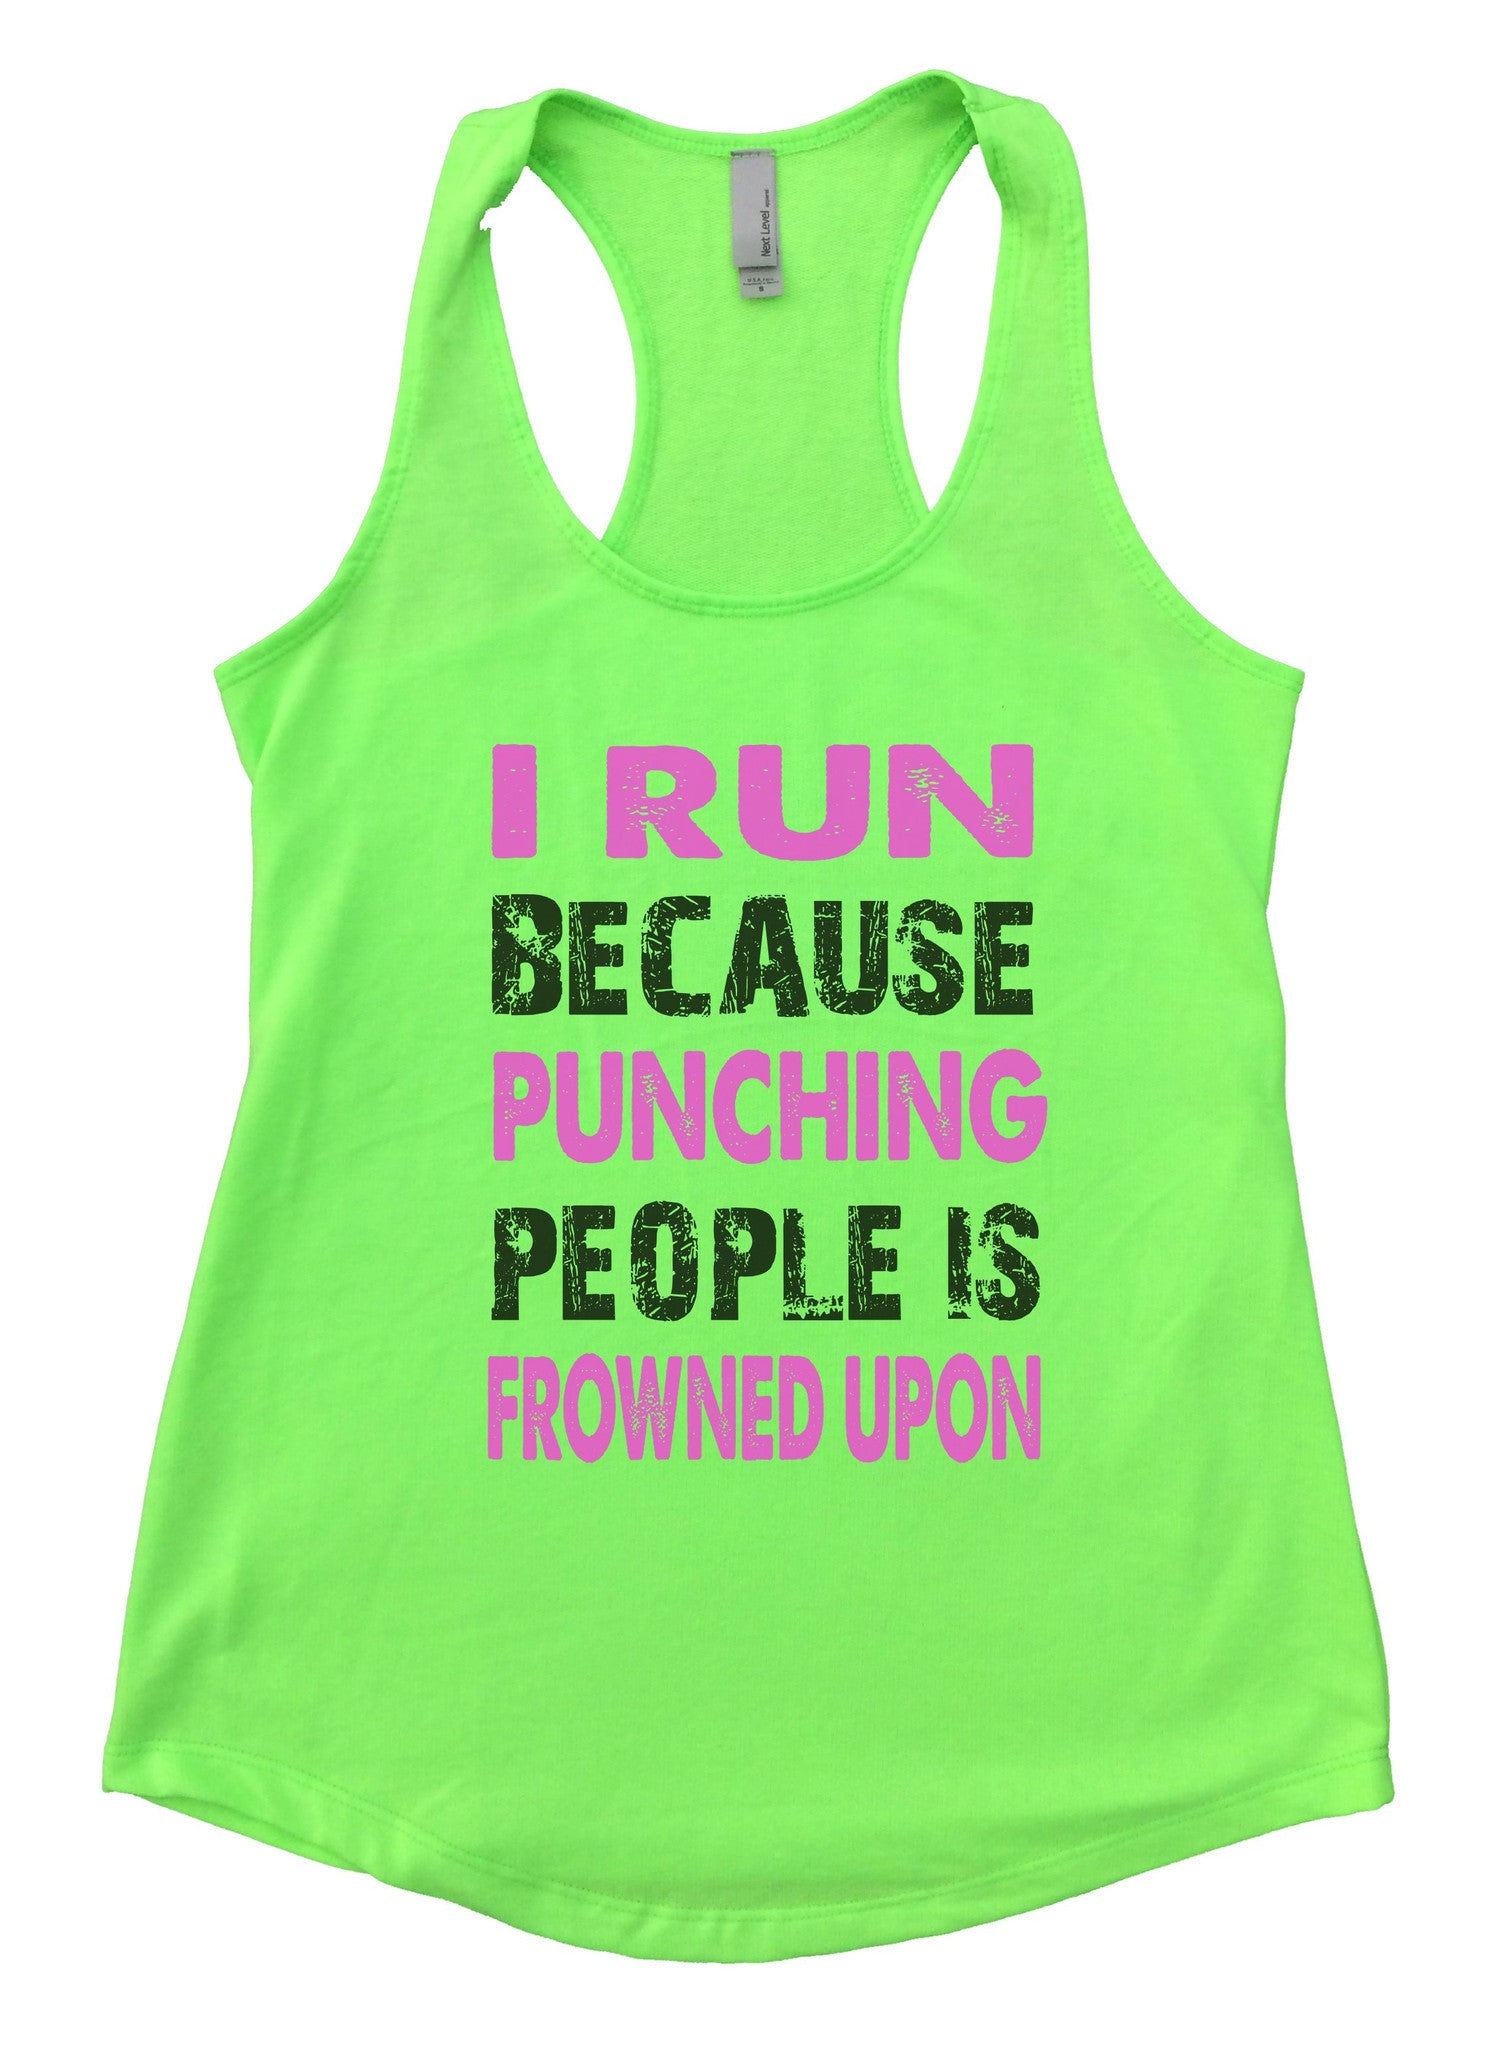 I Run Because Punching People Is Frowned Upon Womens Workout Tank Top F708 - Funny Shirts Tank Tops Burnouts and Triblends  - 2